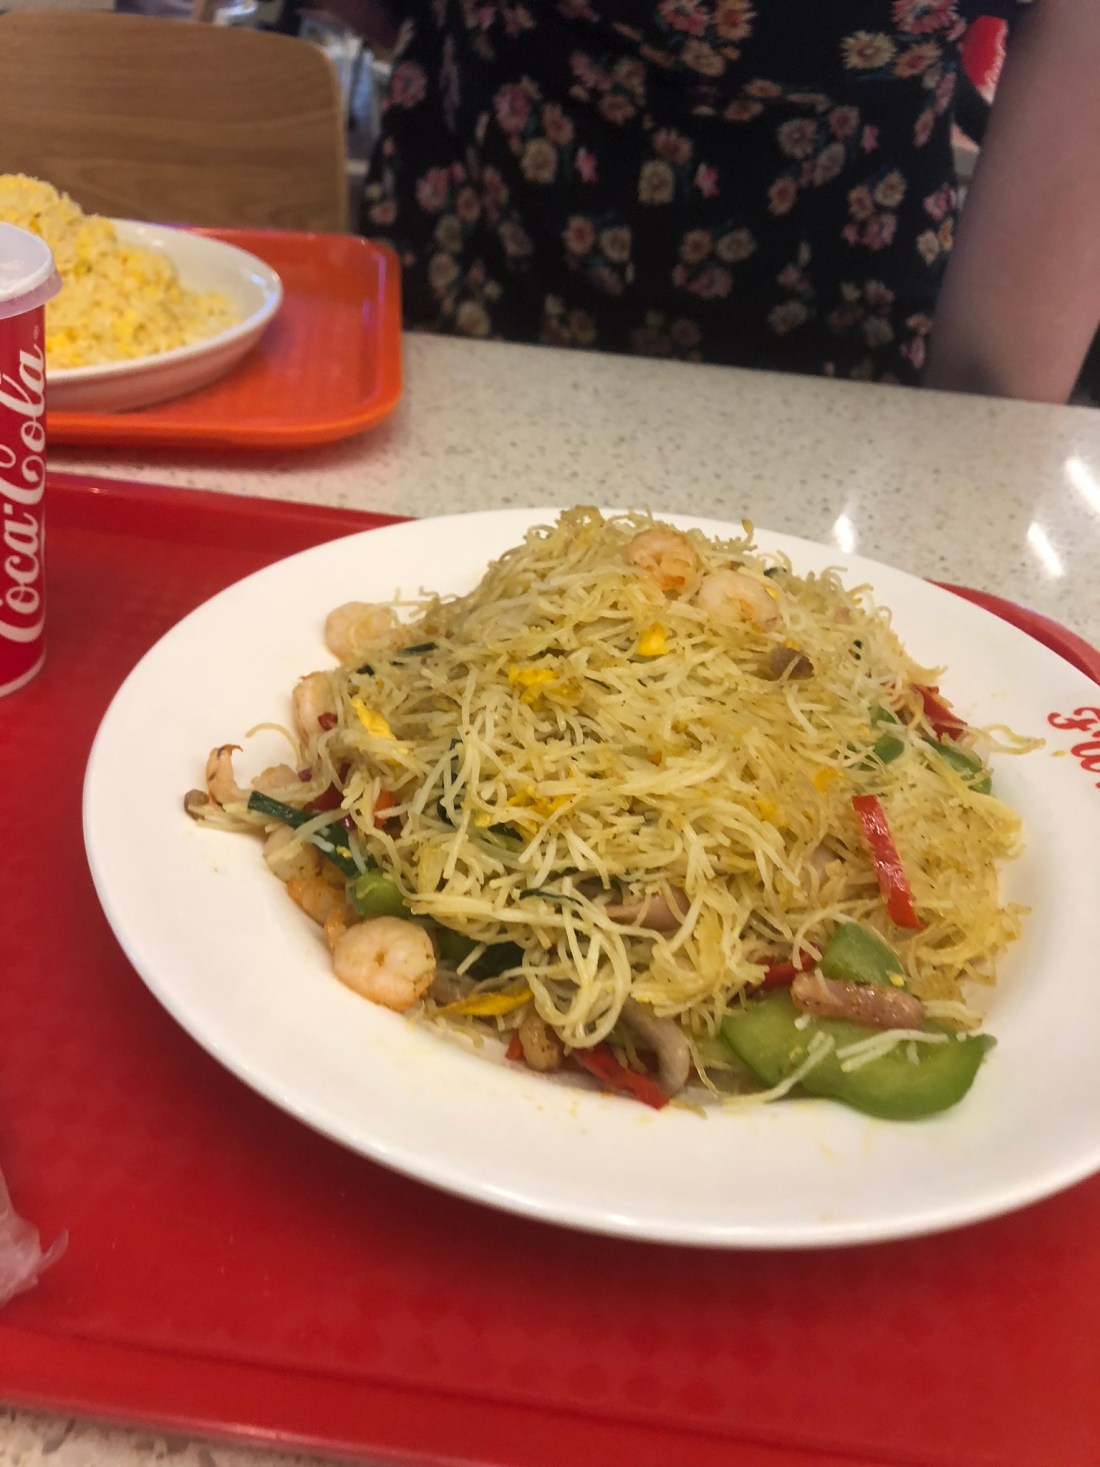 Singapore noodles from the Cotai Strip at the Venetian Macau